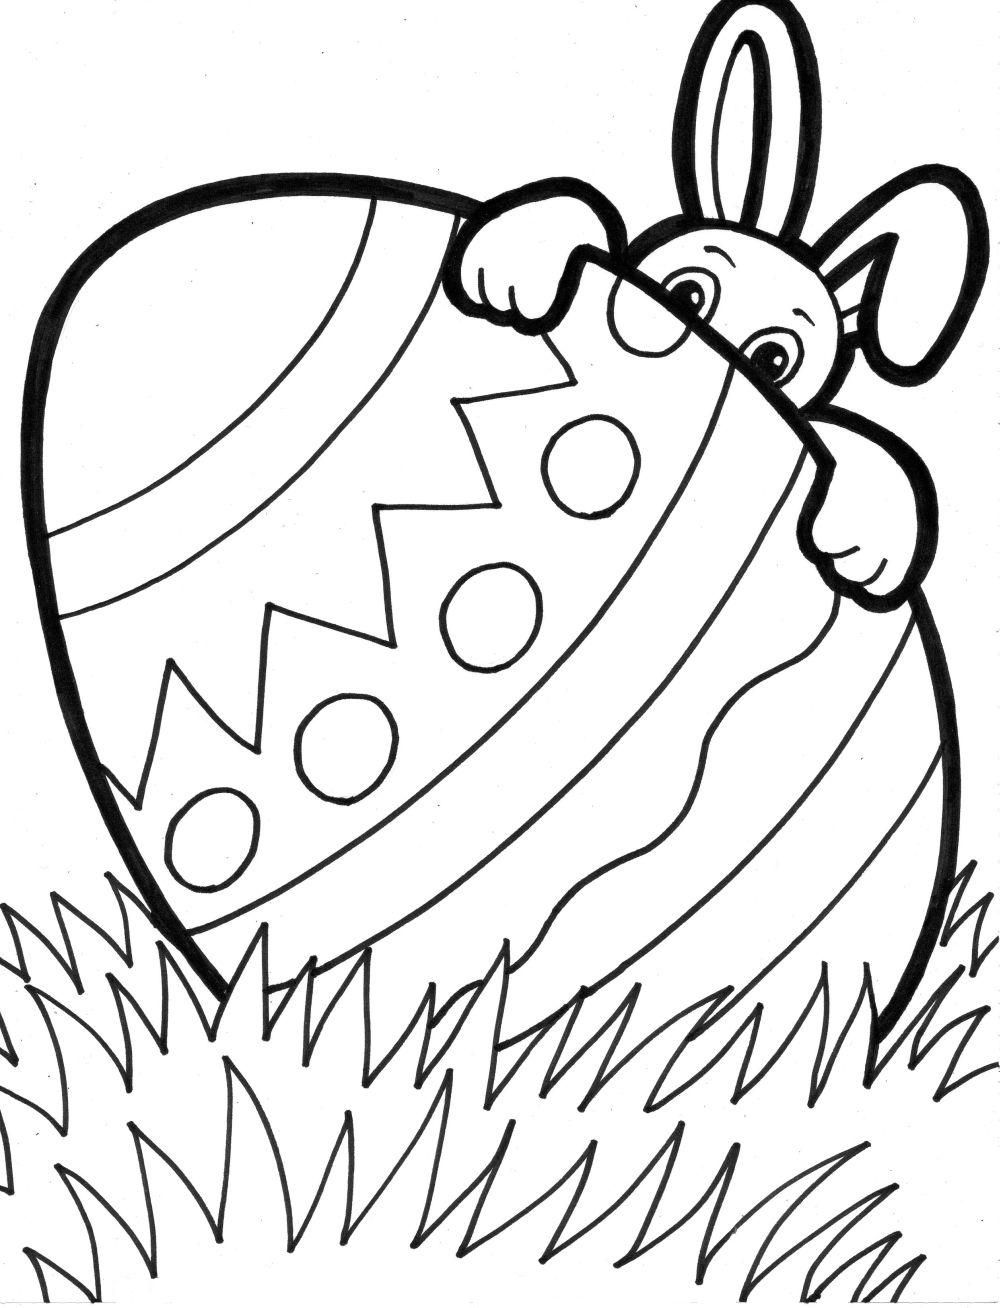 16 super cute and free easter printable coloring pages for kids - Resurrection Coloring Pages Print